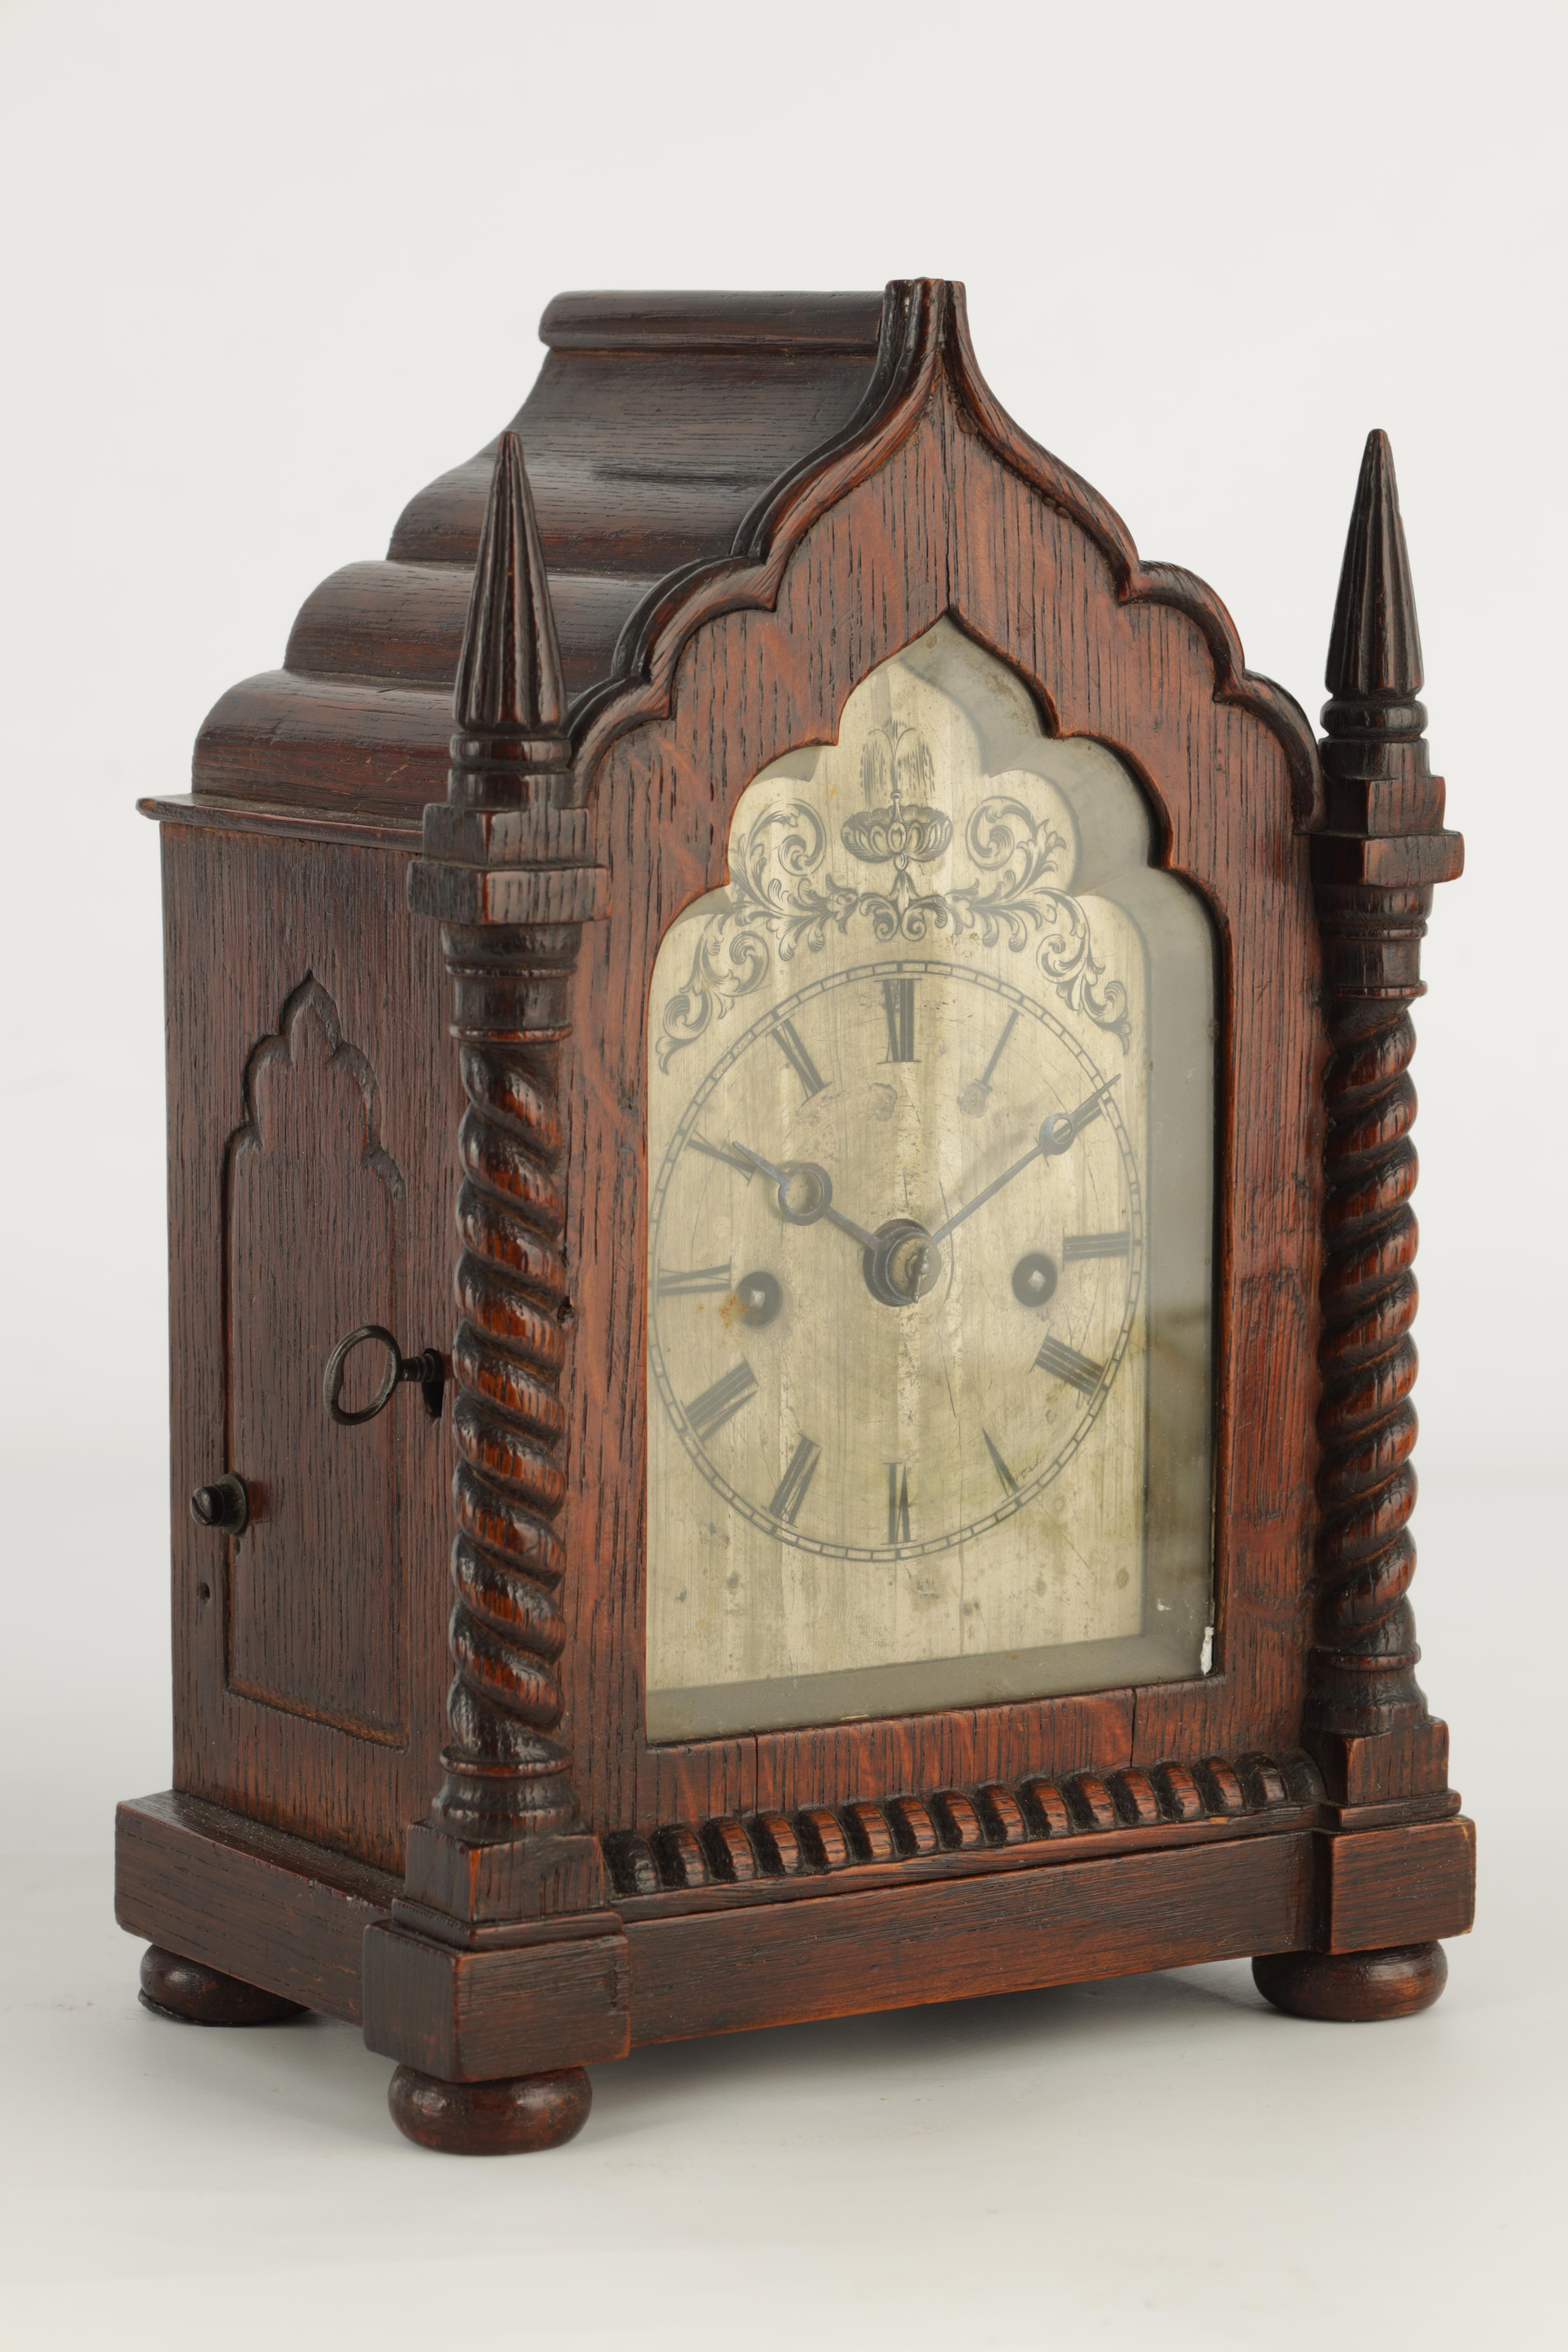 A SMALL MID 19TH CENTURY OAK CASED DOUBLE FUSEE MANTEL CLOCK the gothic style case with twisted - Image 2 of 7